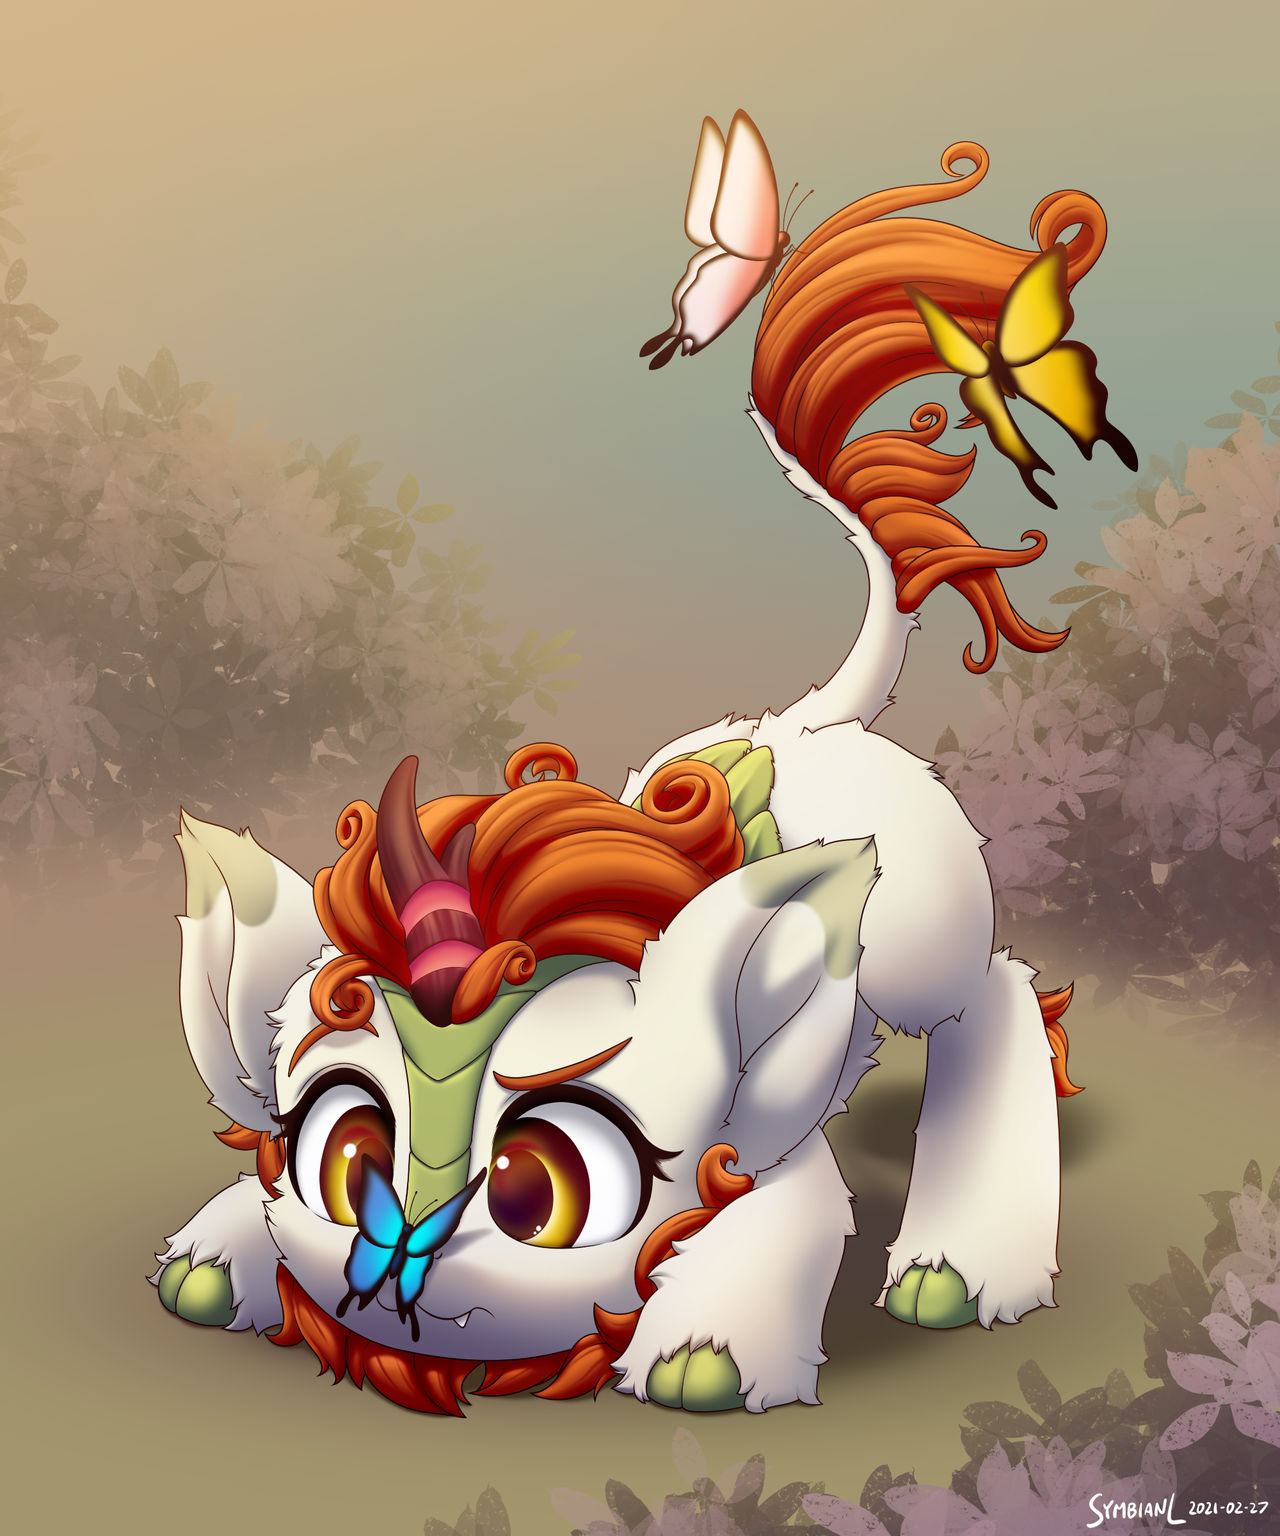 filly_autumn_blaze_by_symbianl_deez1ij-f